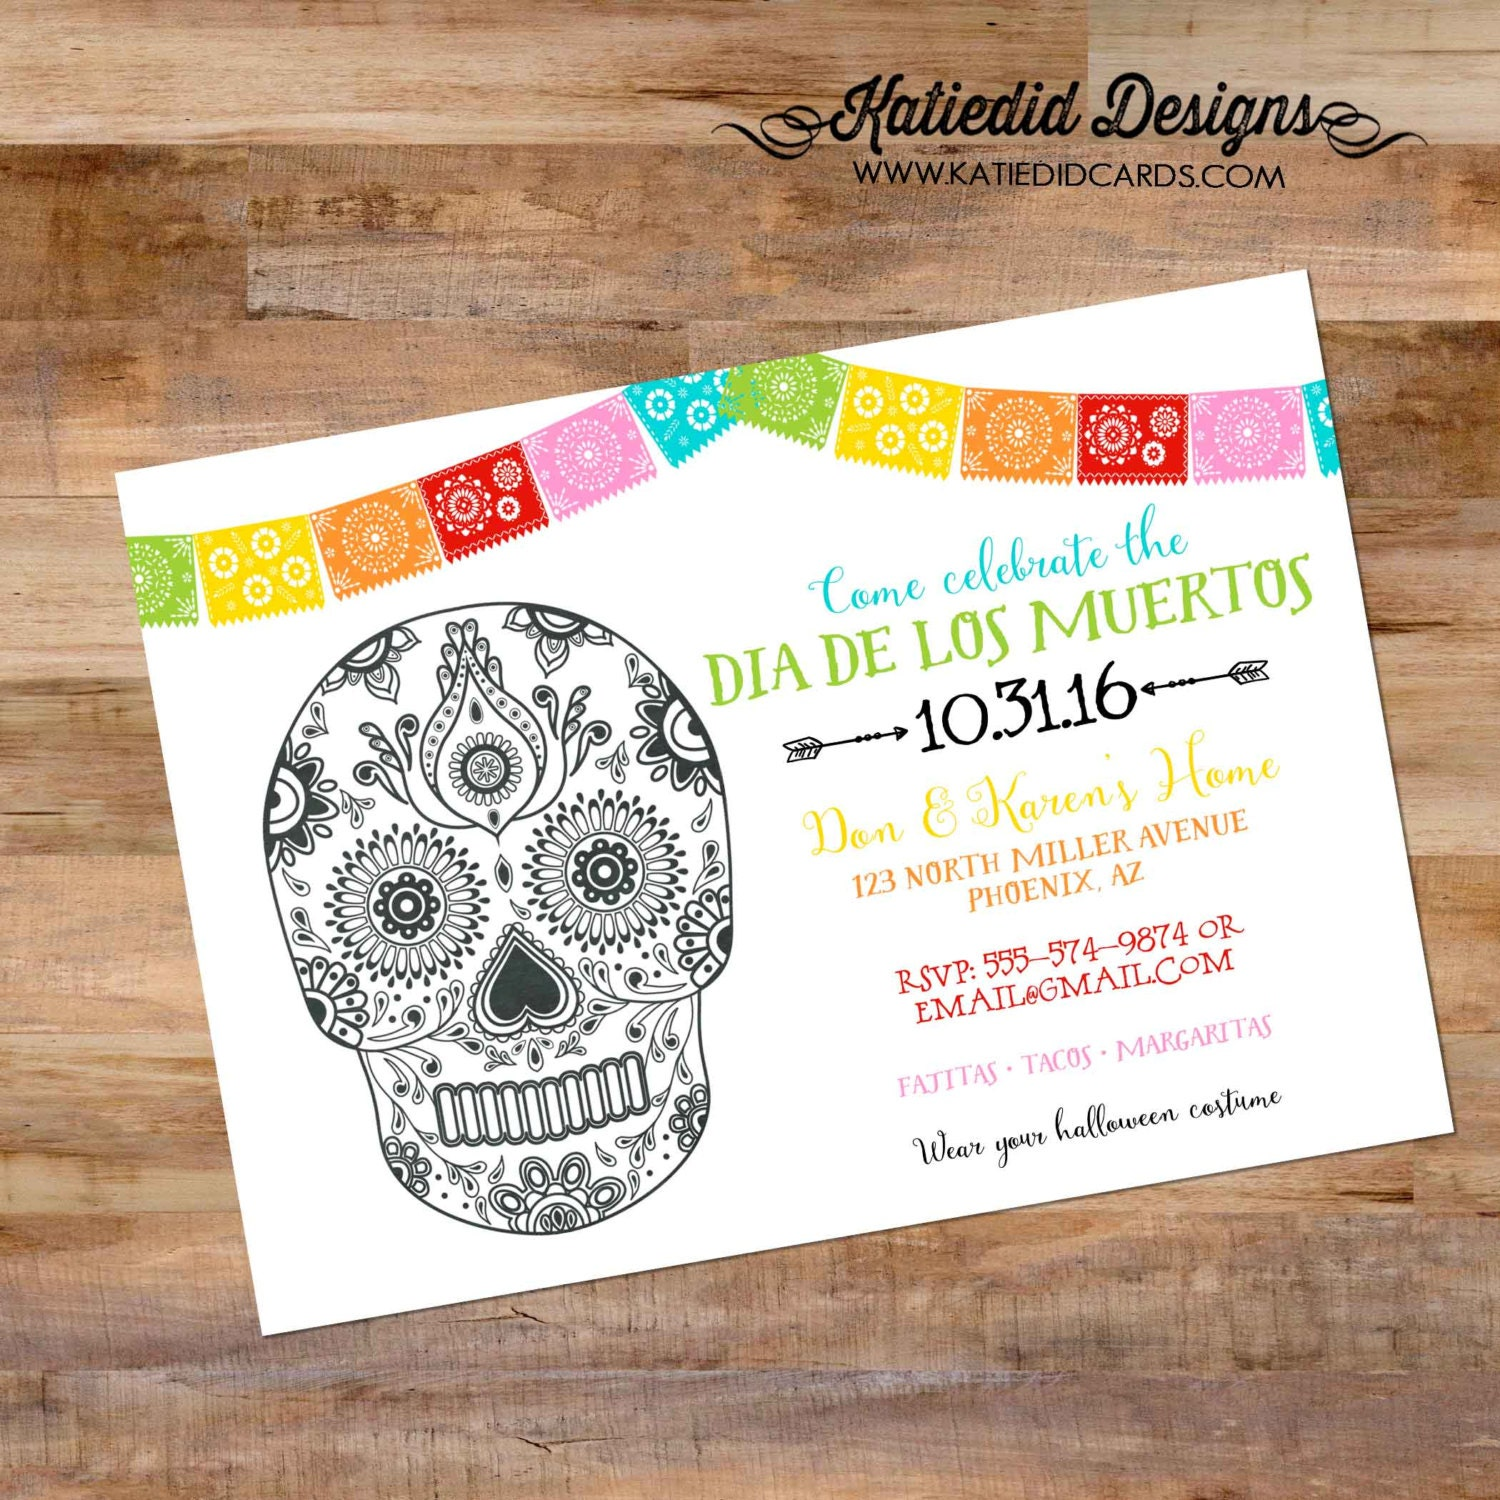 Fiesta Dia De Los Muertos Cinco De Mayo Tacos Margaritas Couples - Day of the dead party invitation template